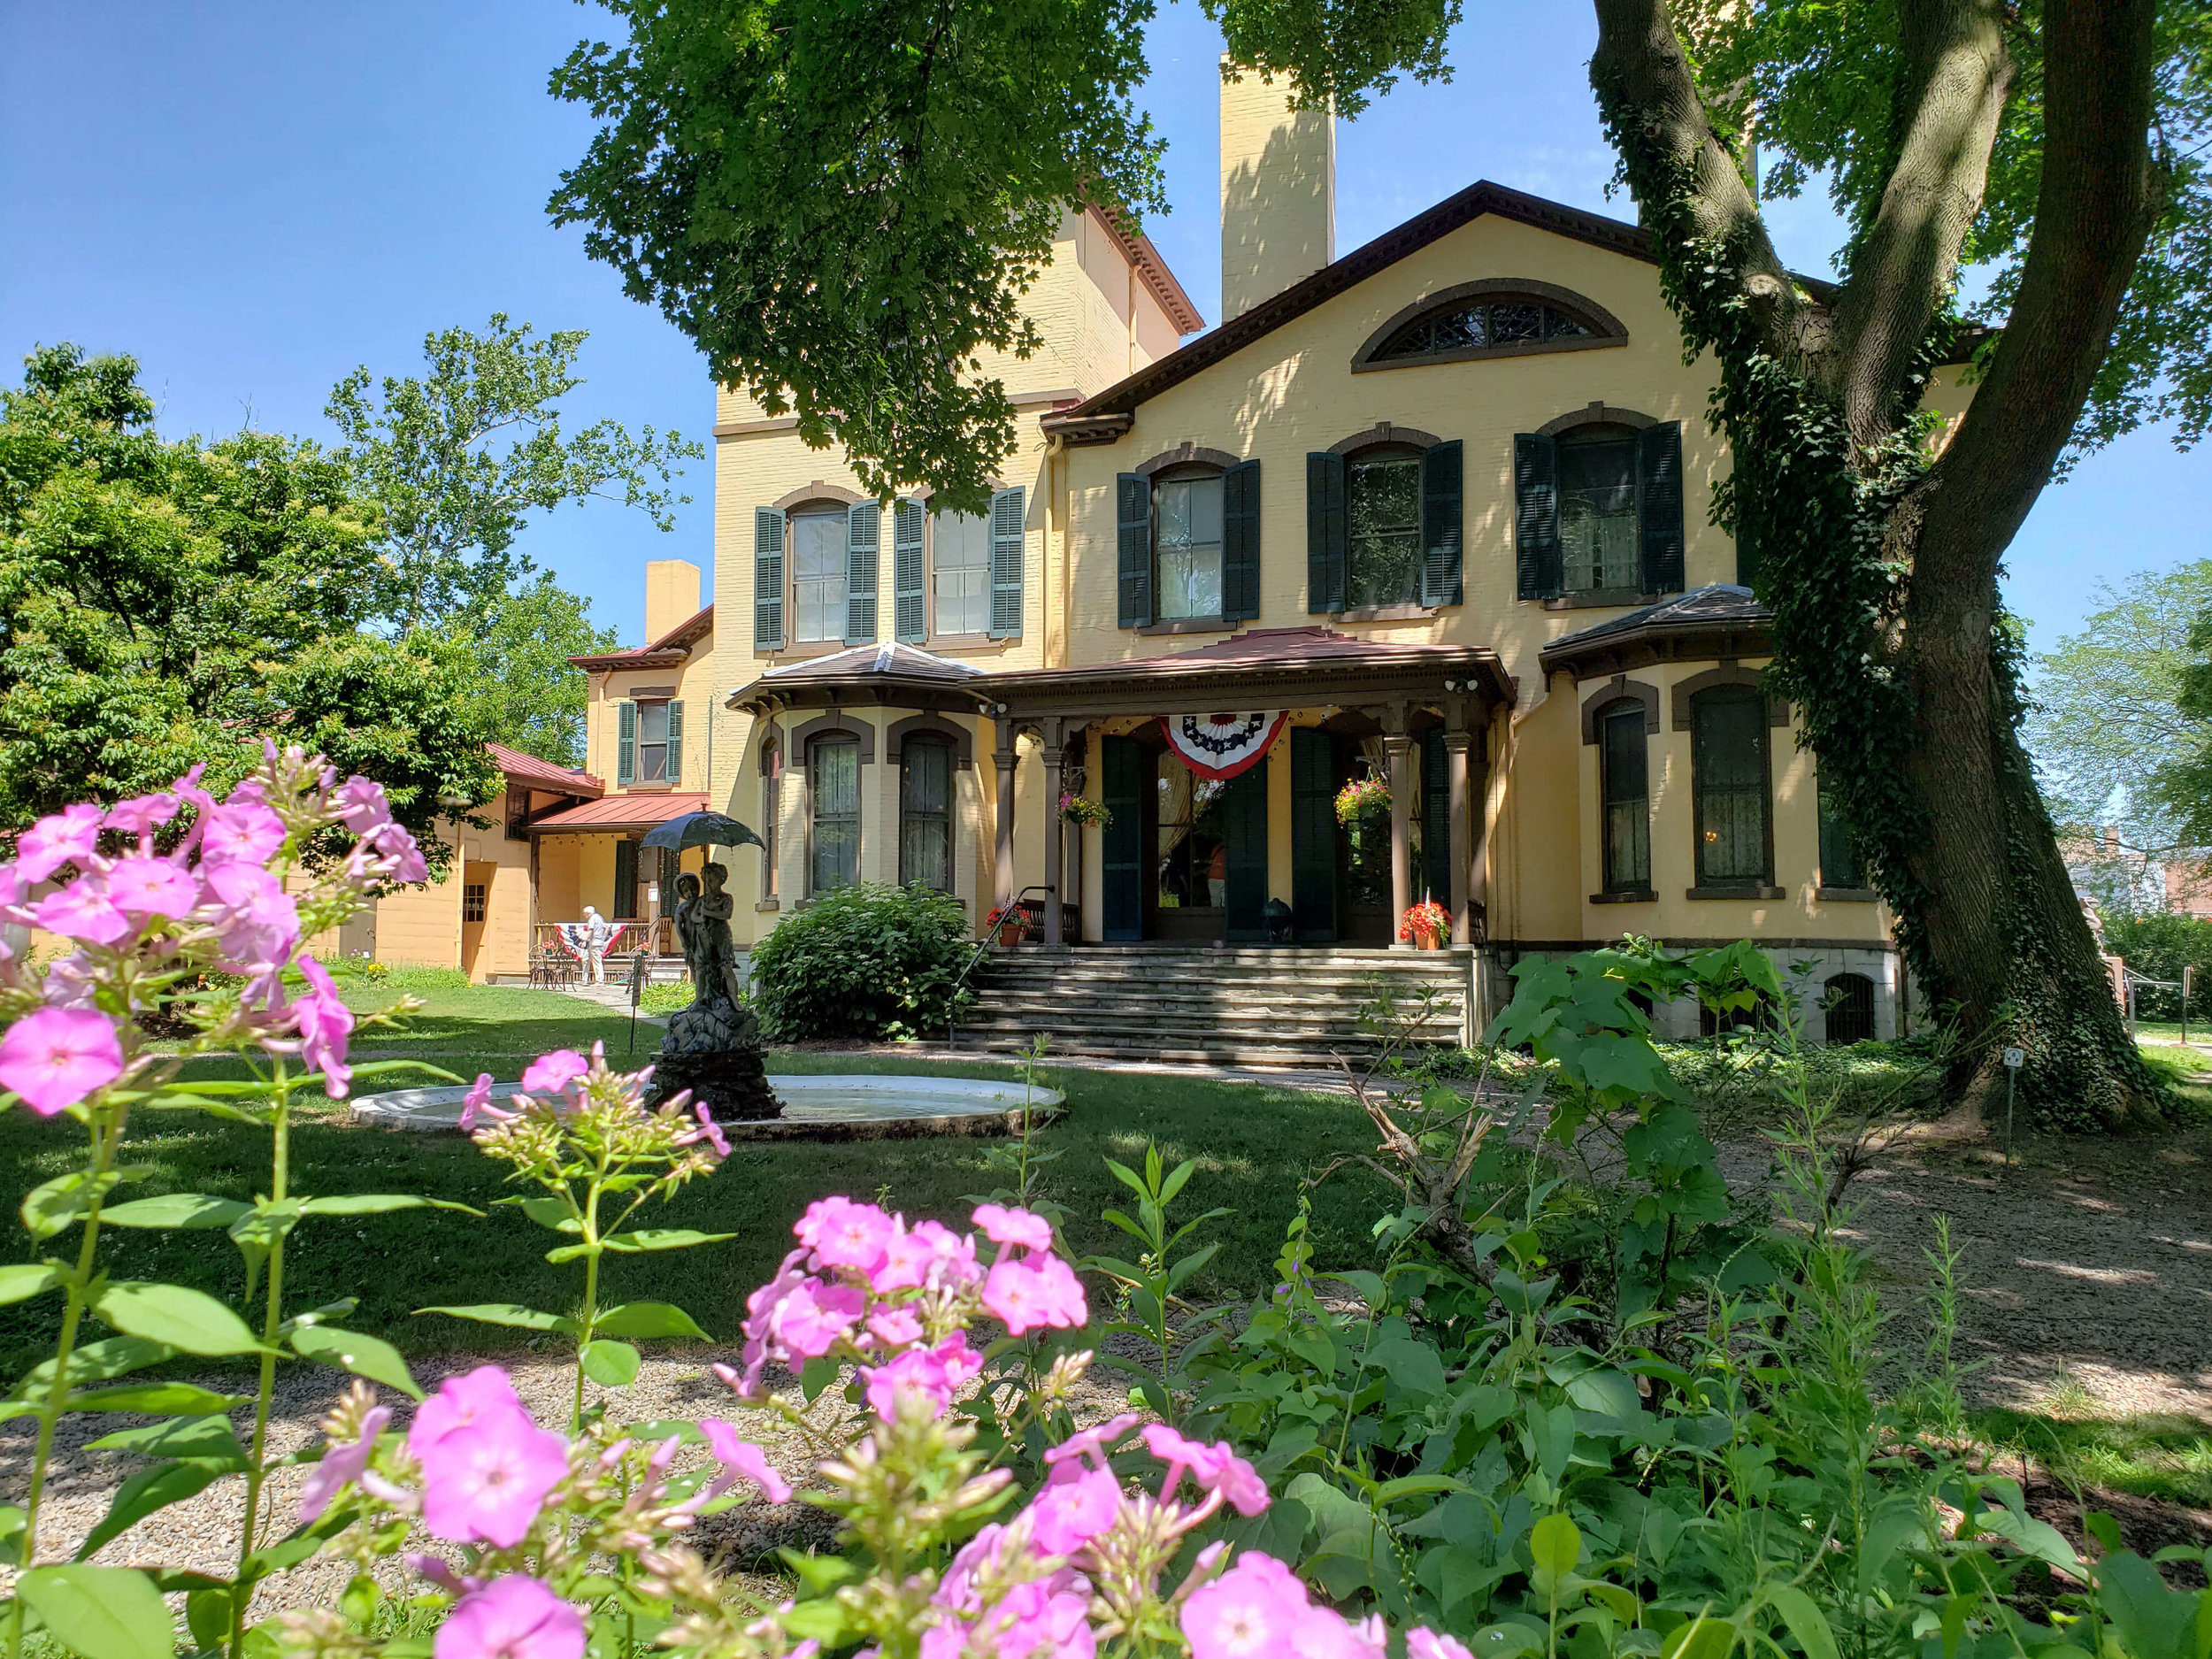 Cayuga County: Seward House Museum - Seward House Museum Building Condition Report